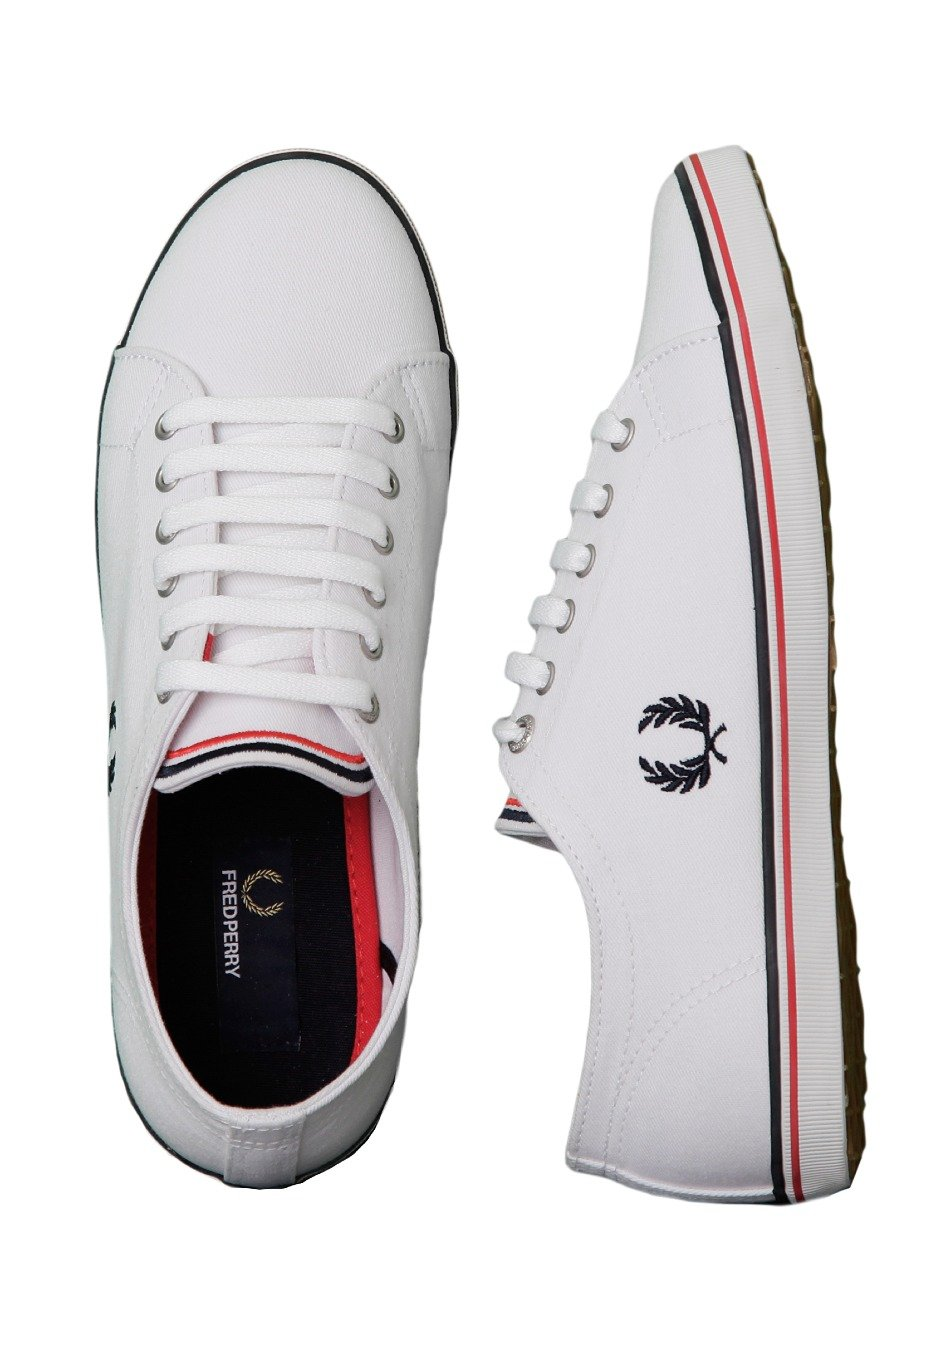 Fred Perry - Kingston Twill White Navy England Red - Girl Shoes -  Impericon.com AU cde7d83cfea